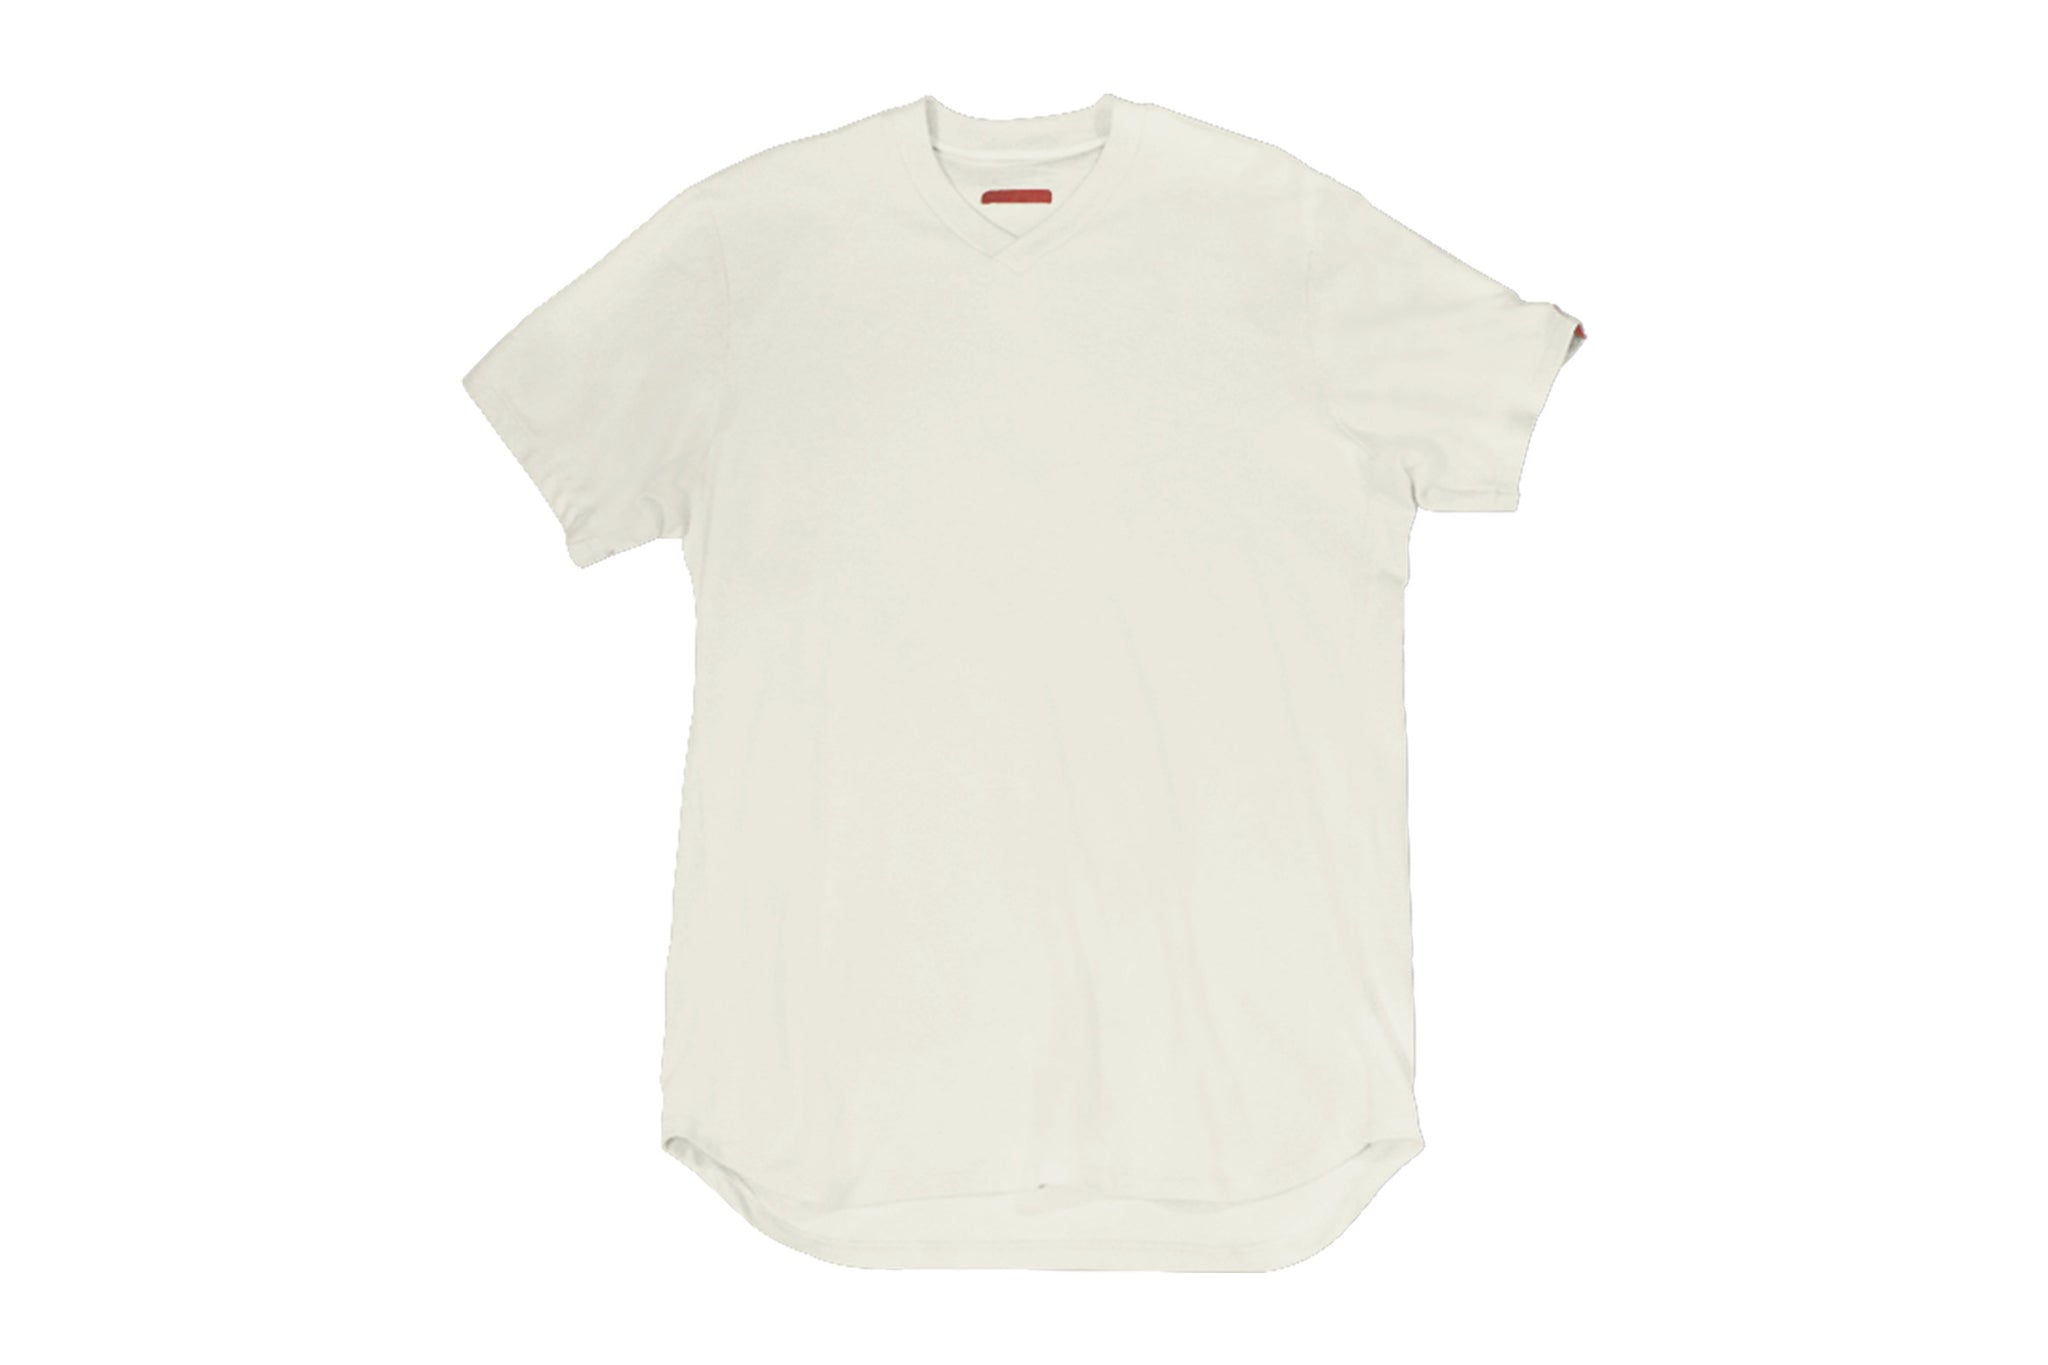 Warren Peace - Teller V-Neck T-Shirt in Fog Front - Designer Streetwear